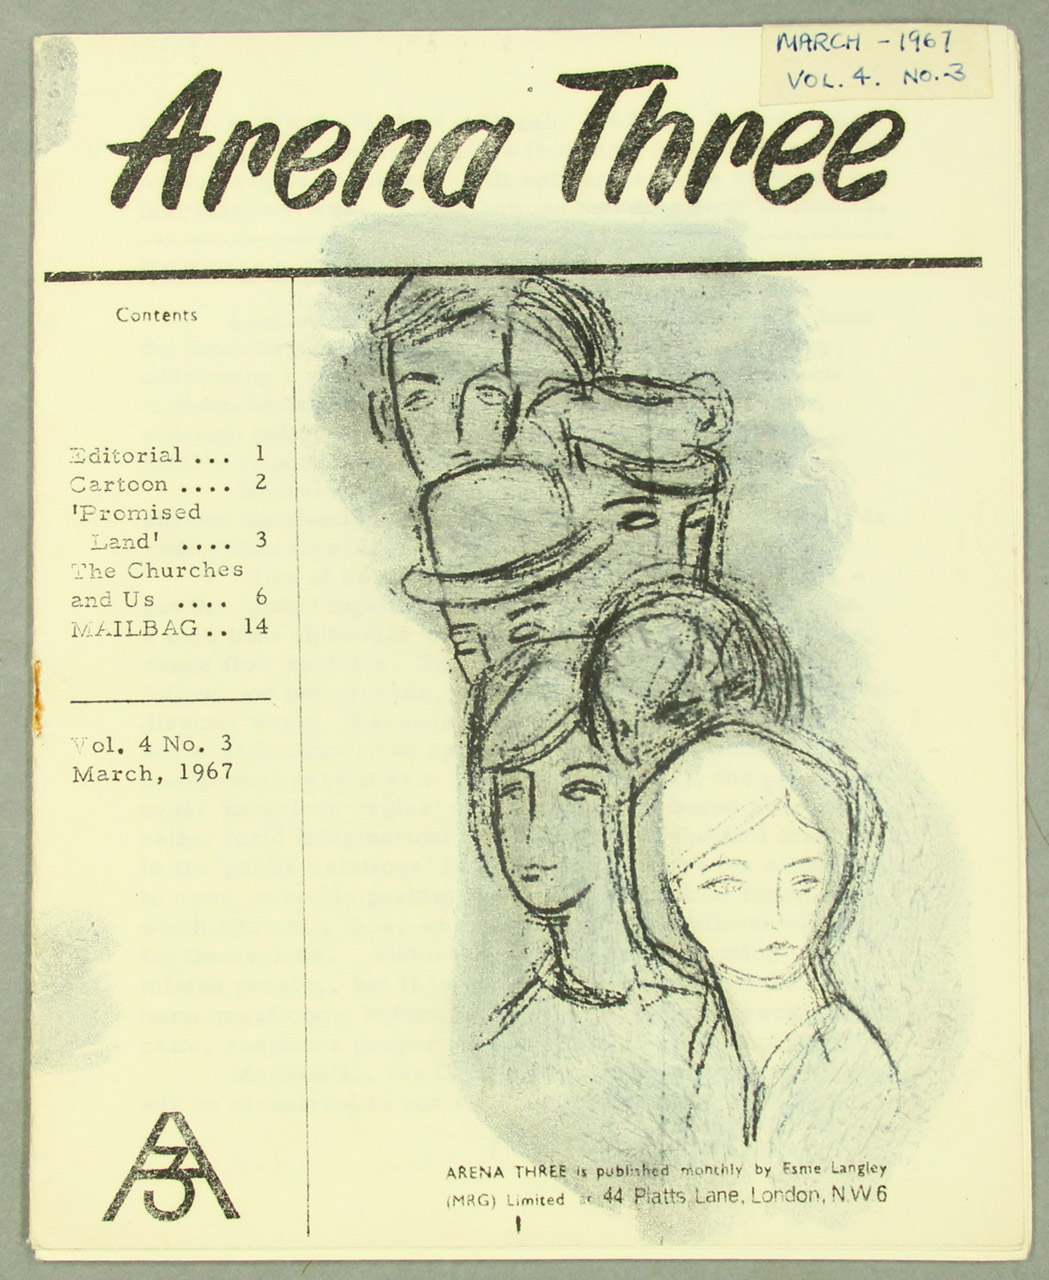 Arena 3, March 1967, Volume 4, Number 3